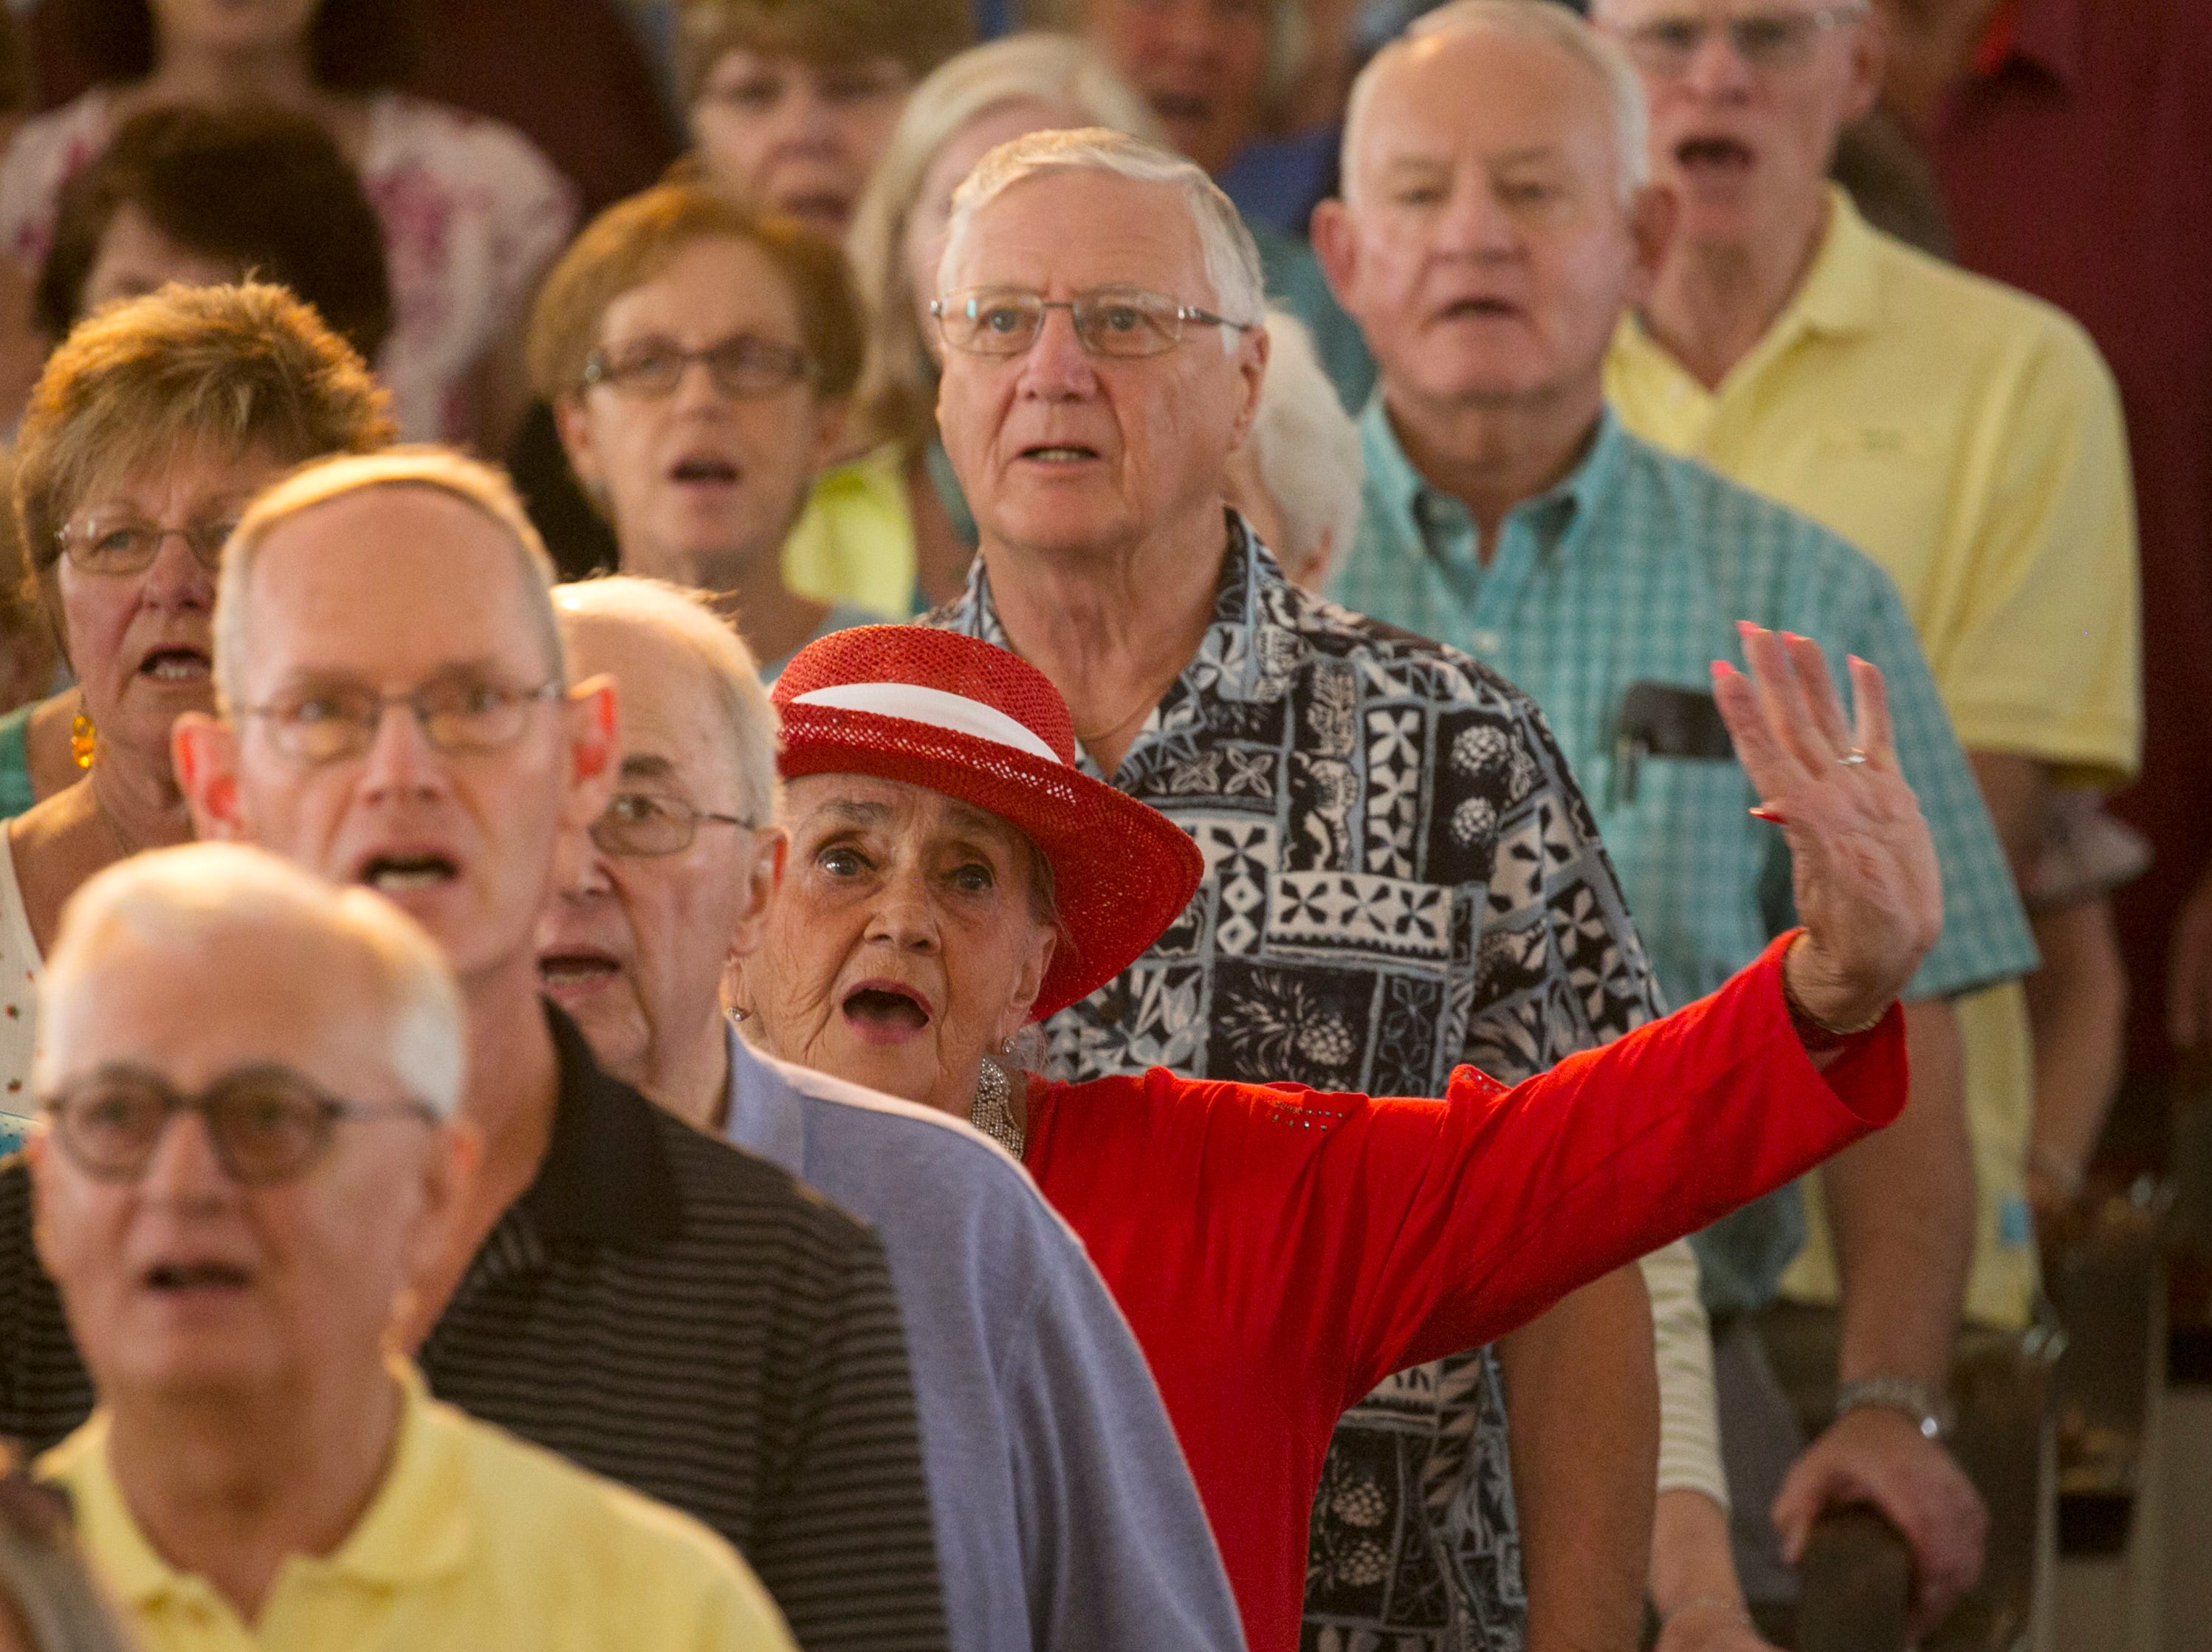 Marci Stoner sings God Bless America with the congregation during the 30th annual Mrs. Edison's Hymn Sing on Tuesday, February 5, 2019, at First Presbyterian Church in Fort Myers.